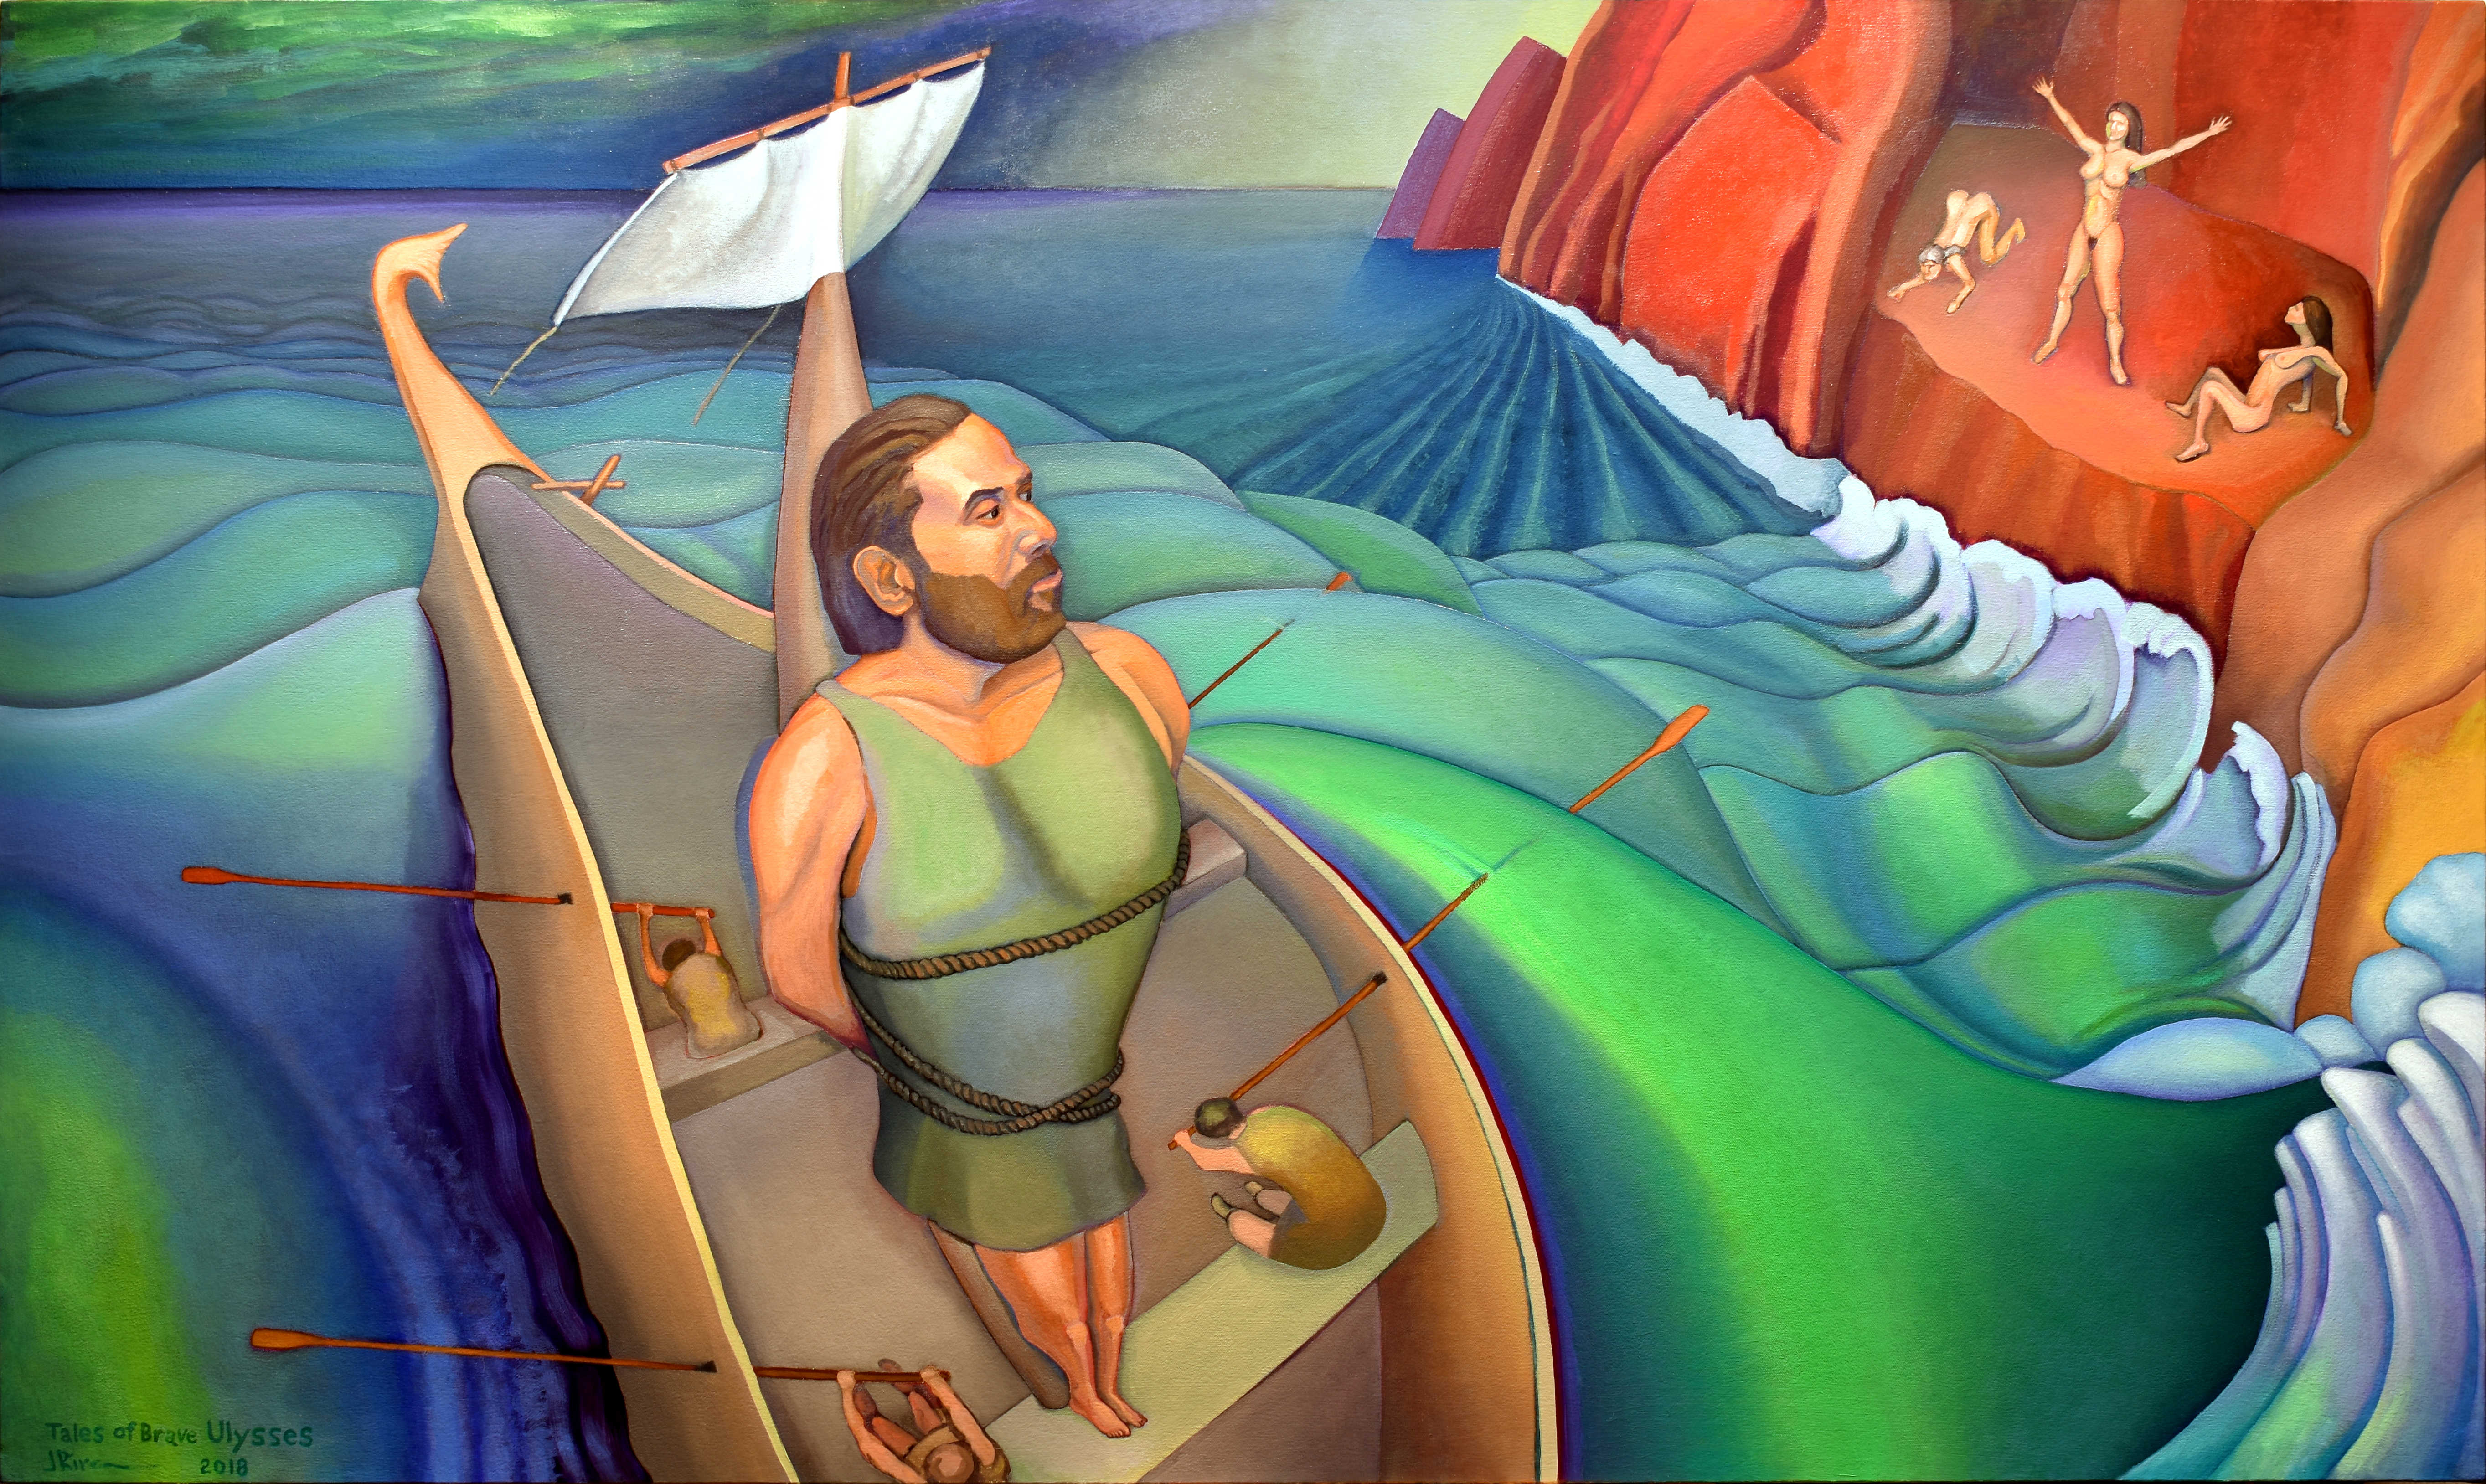 Tales of Brave Ulysses, a painting by Jacinto Rivera